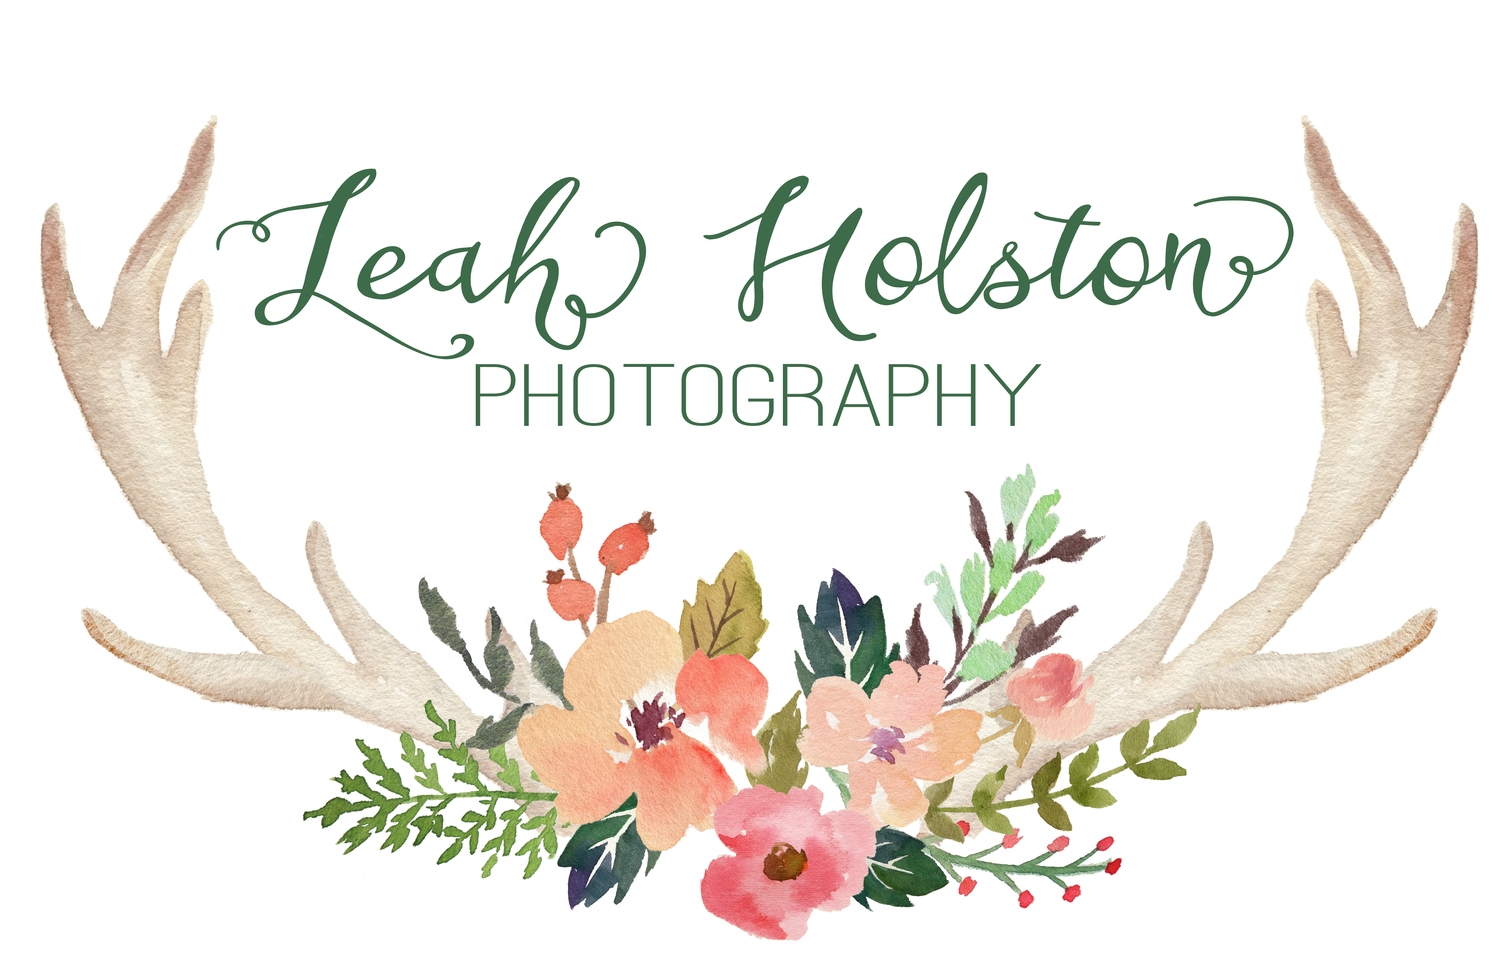 Leah Holston Photography